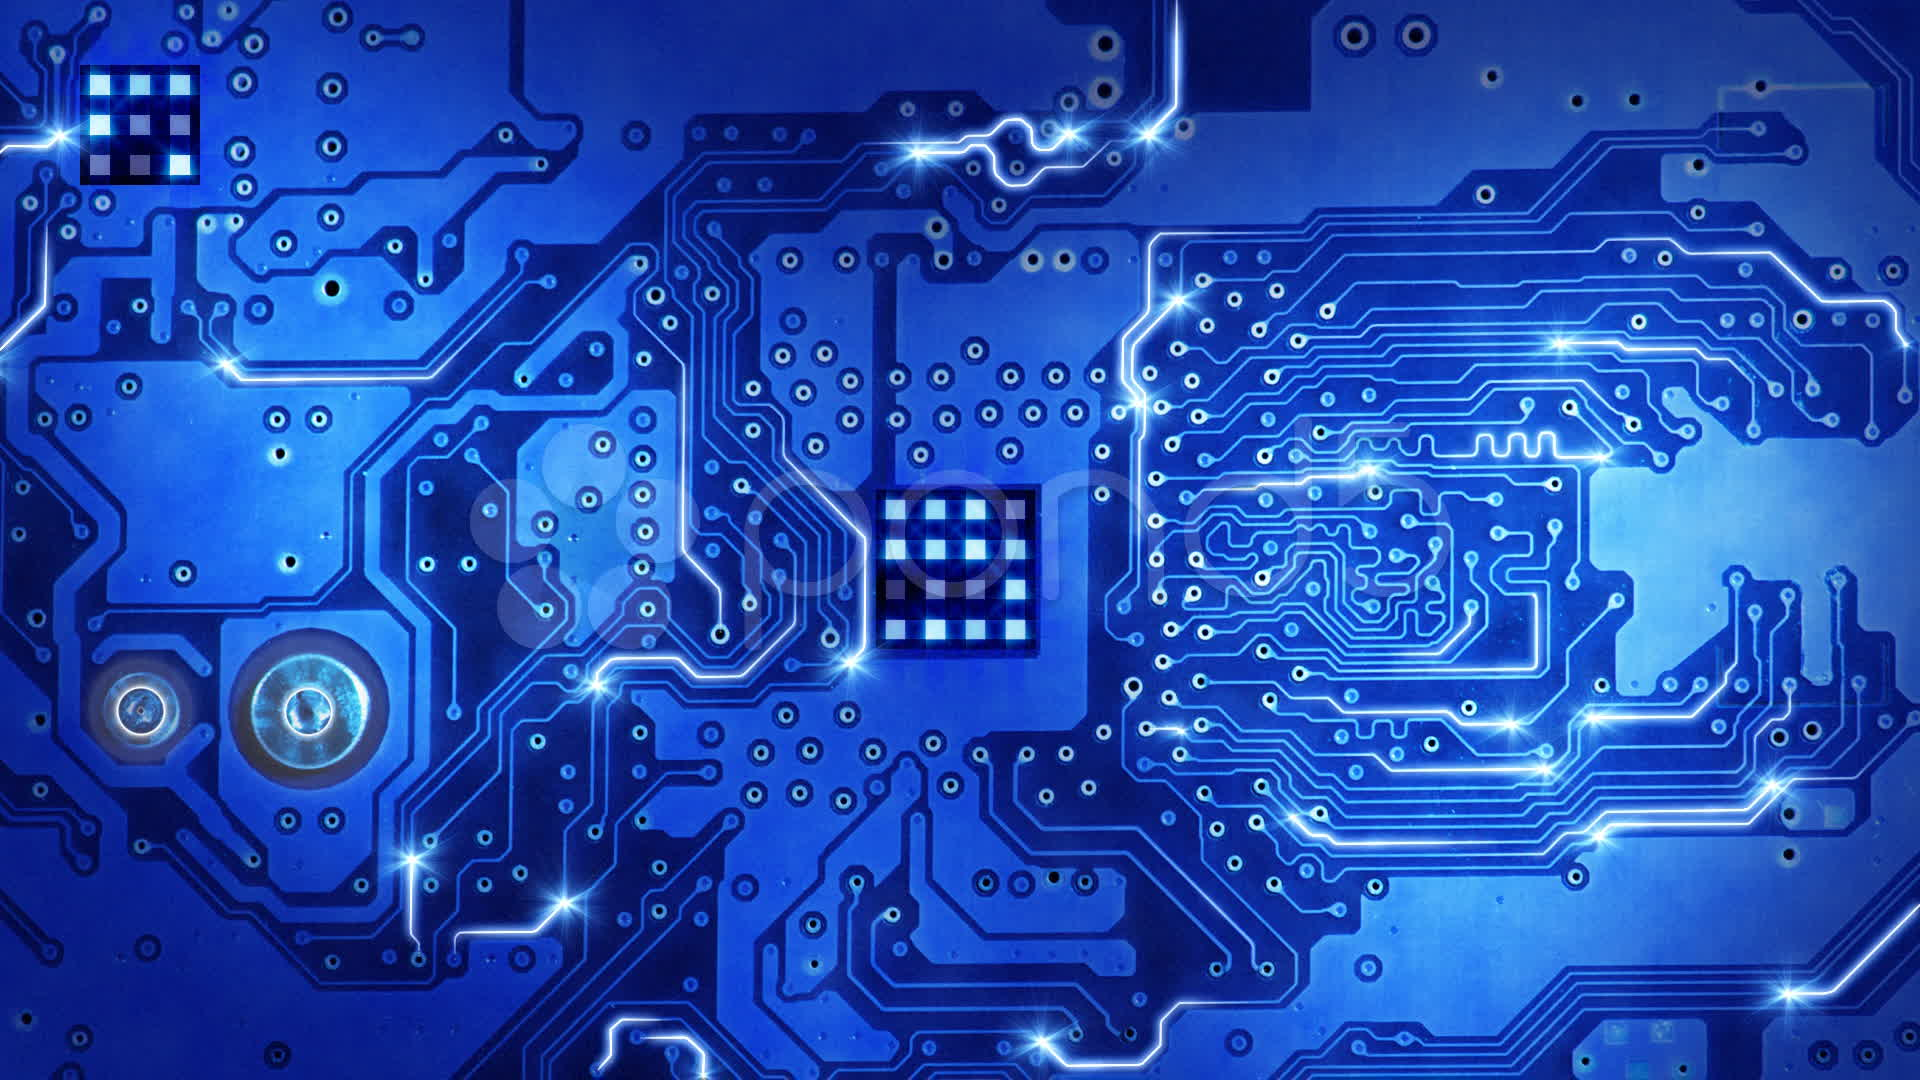 Neon Circuits Wallpaper And Background Image: Circuit Board Wallpapers HD